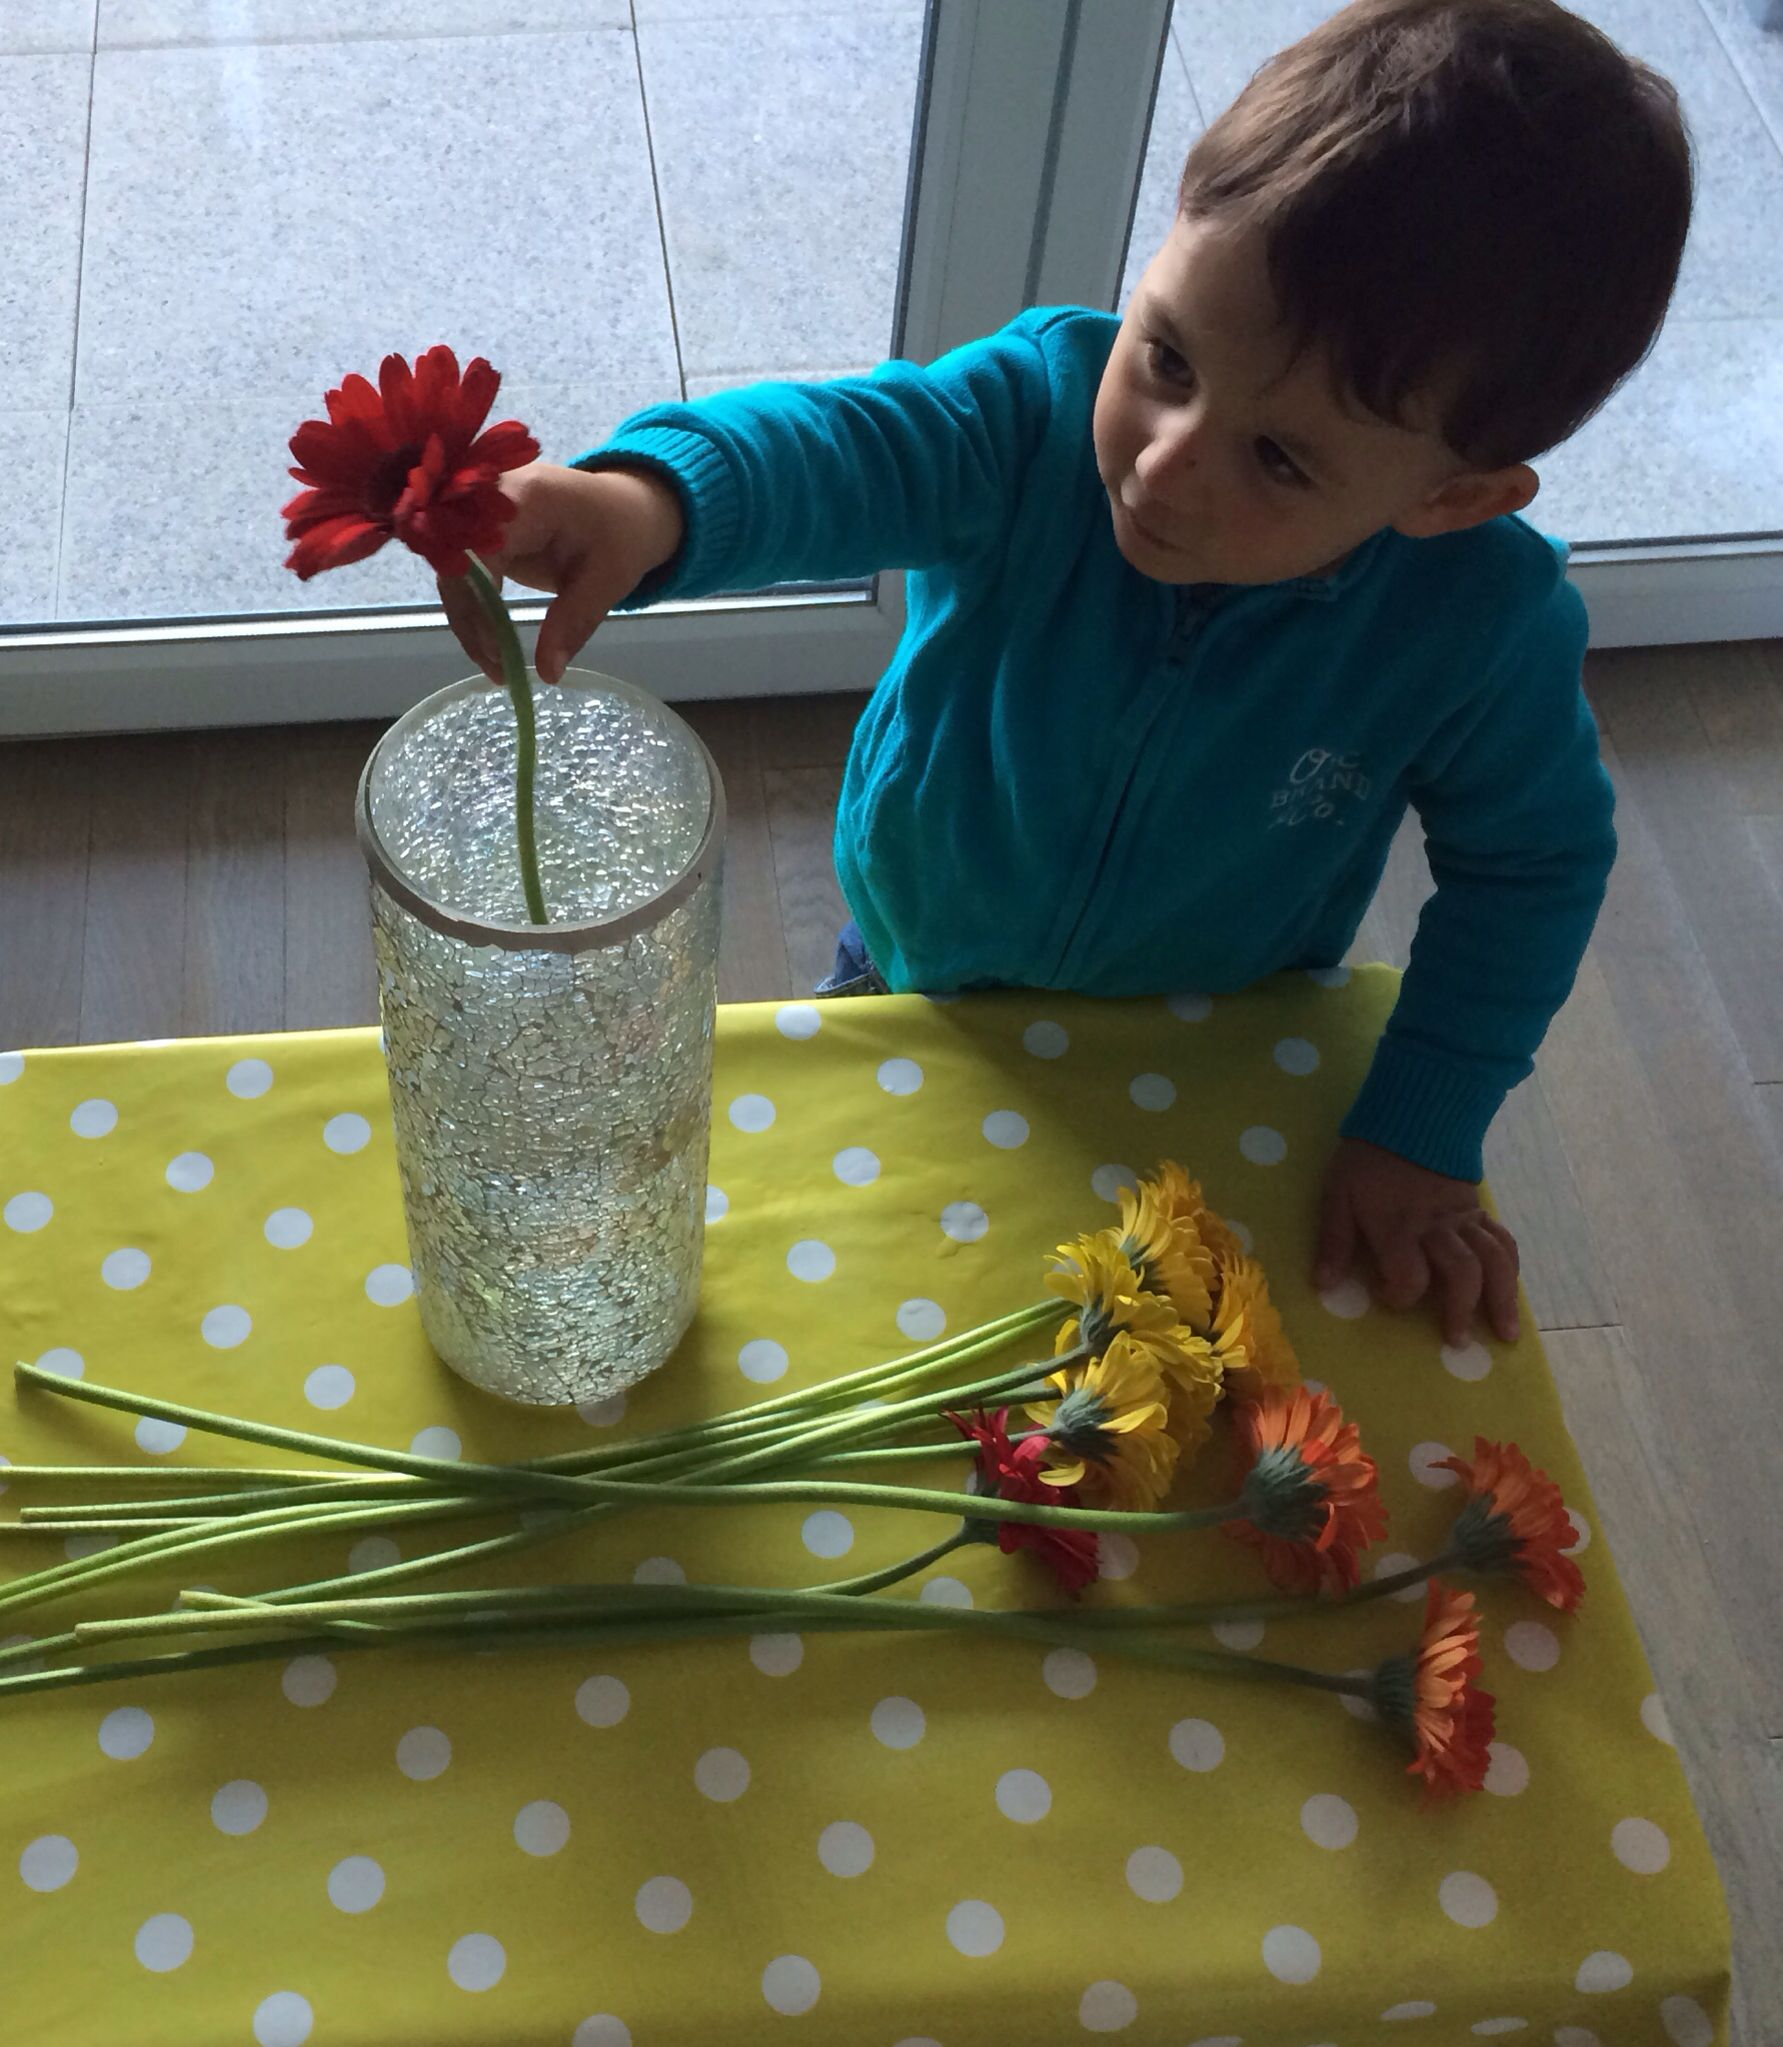 Arranging His Own Bouquet Montessori Practicallife With